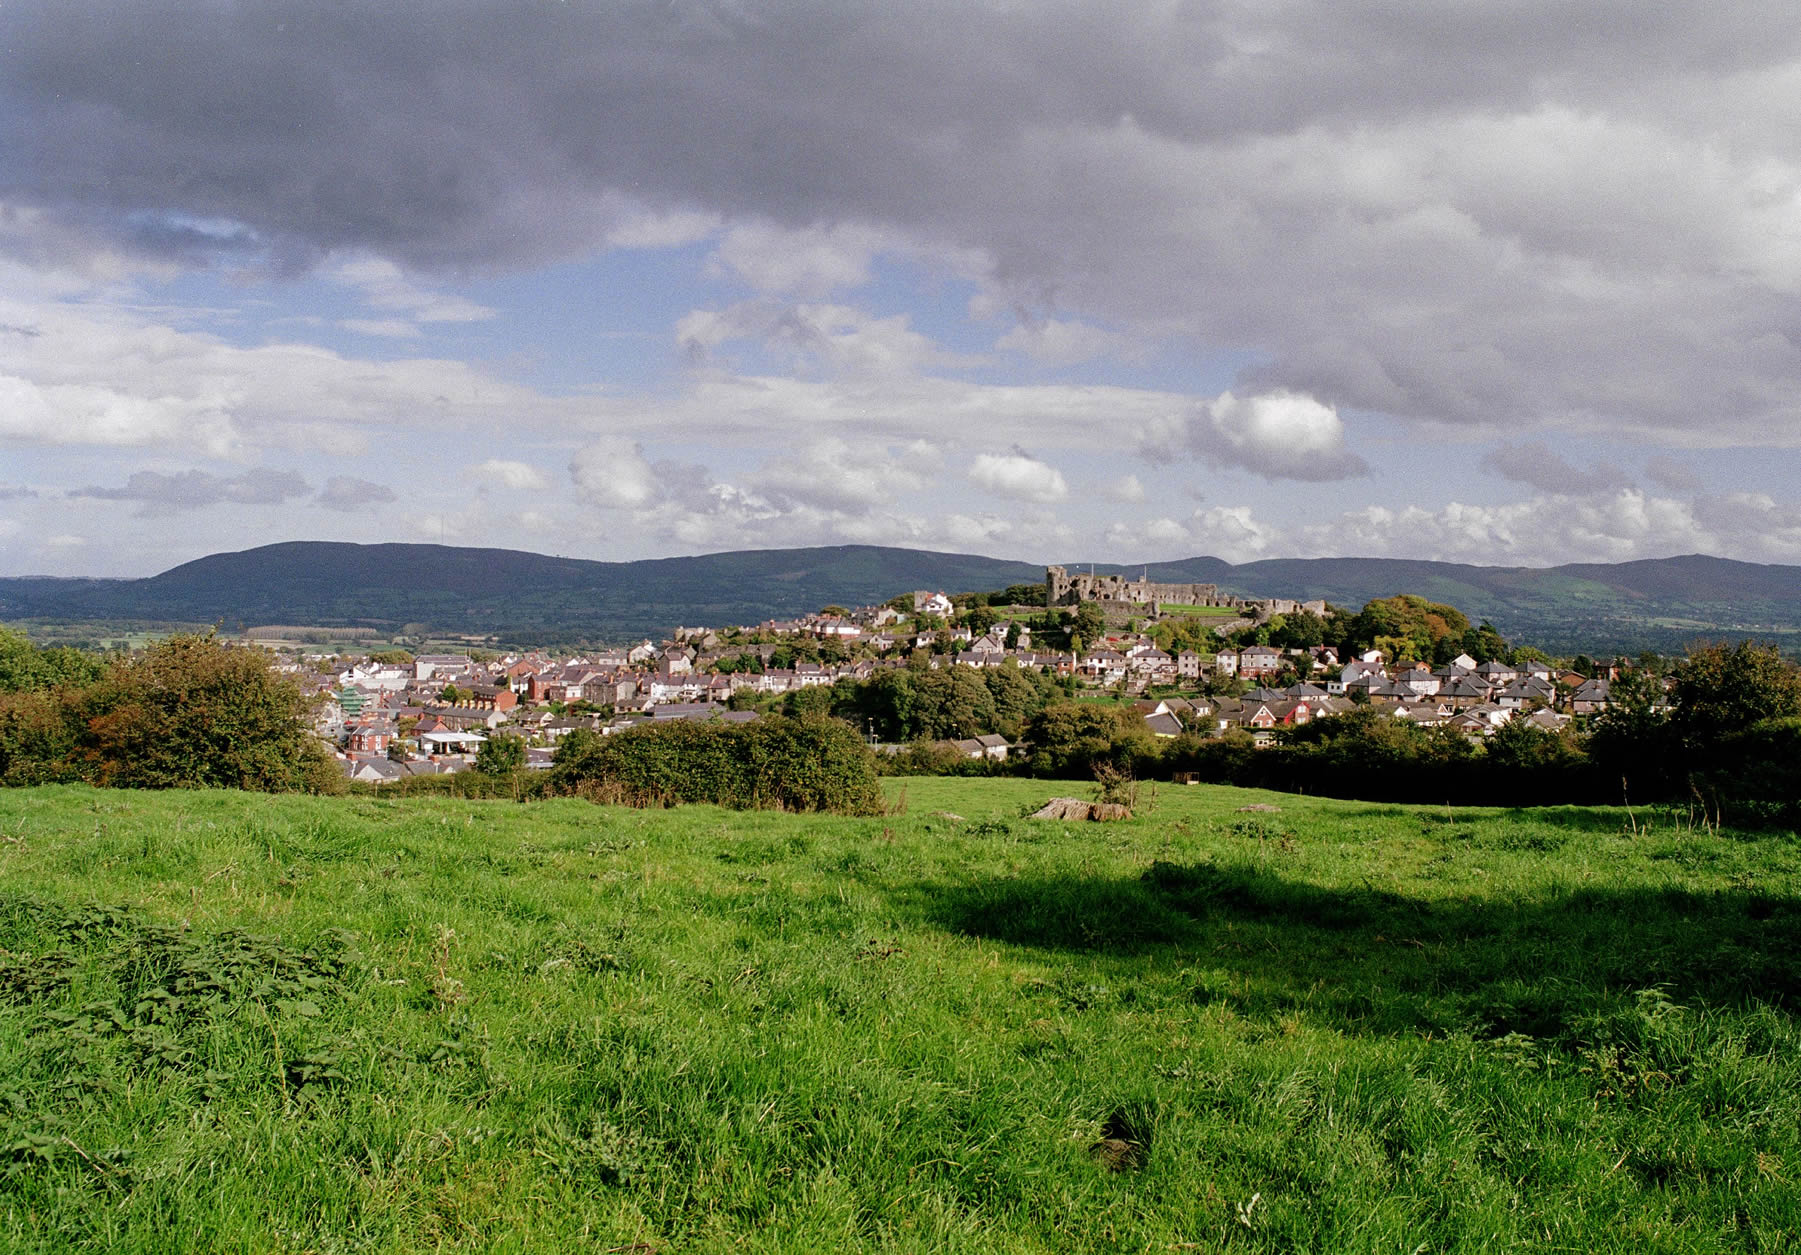 Denbigh – a 13th century market town with a castle on its hilltop centre, situated in the beautiful, rural Vale of Clwyd, north Wales. It's been home to Craig Bragdy since the purchase and conversion of Brookhouse Mill in the early 1960's.